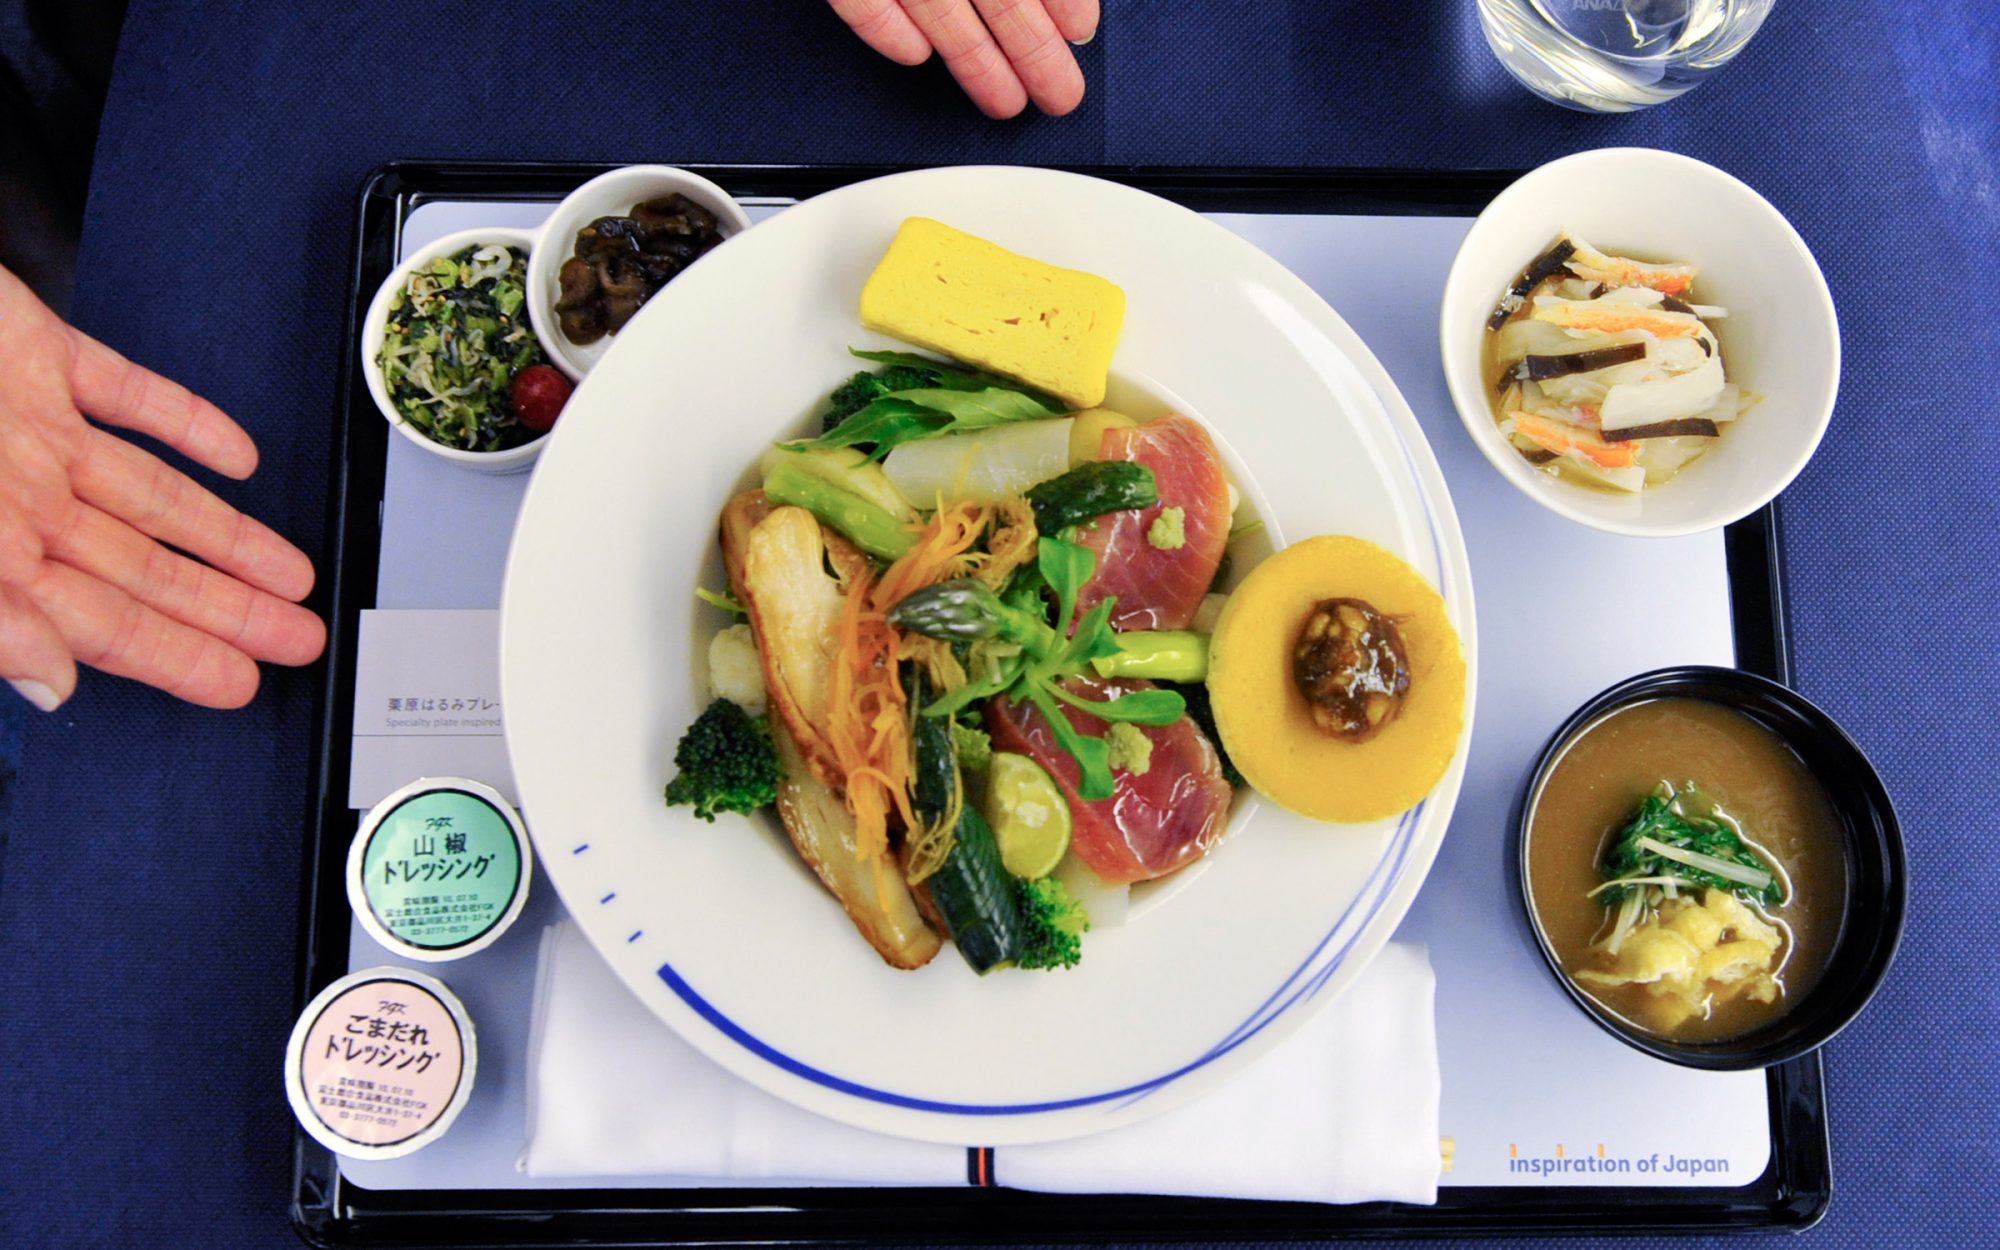 All Nippon Airways food